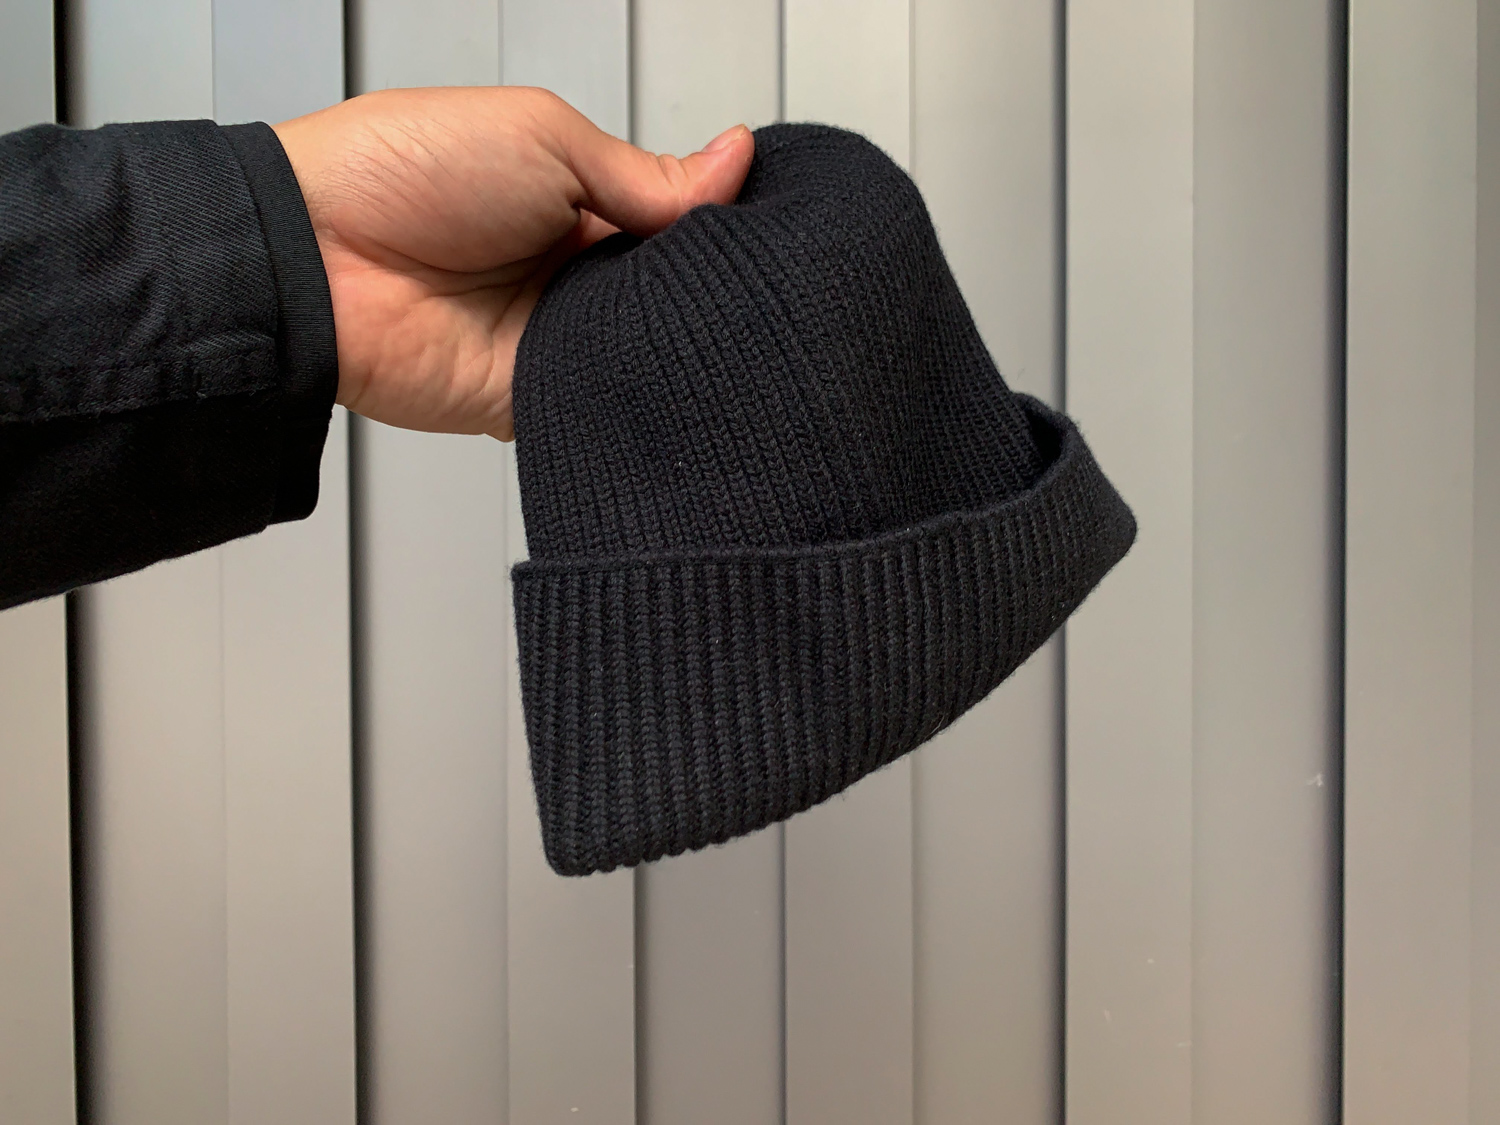 100% merino wool watch cap for everyday wear.